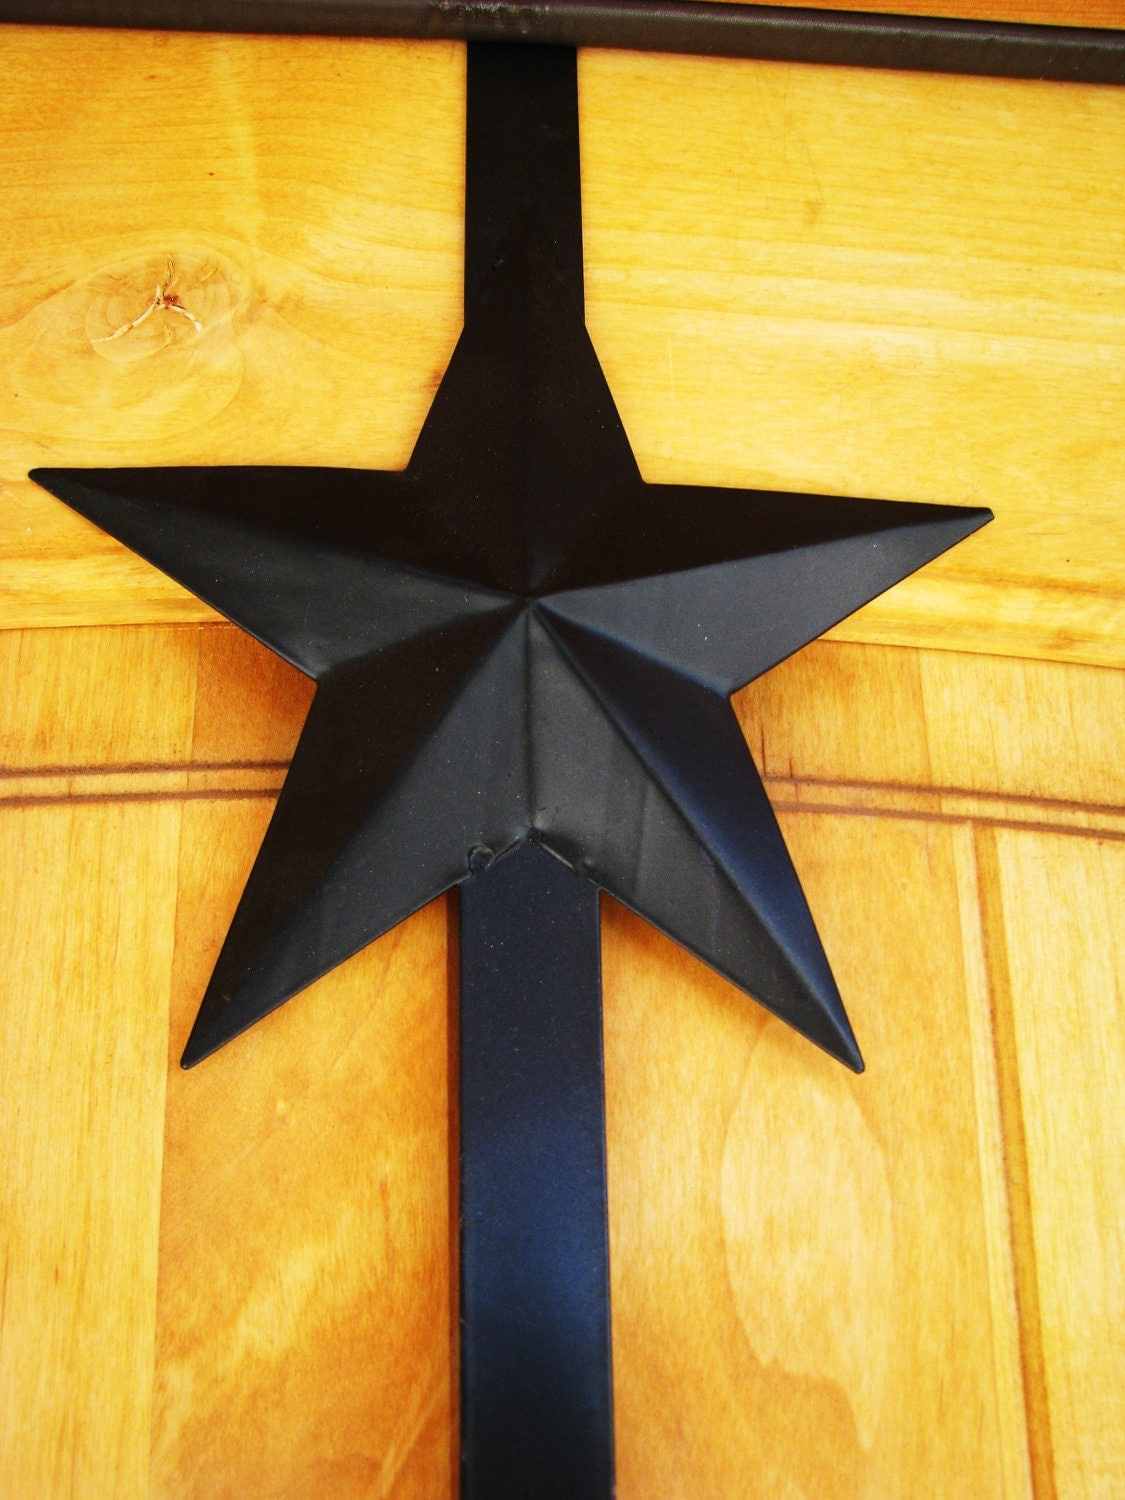 Country Primitivel Star Door Wreath Hanger Door Hook Front